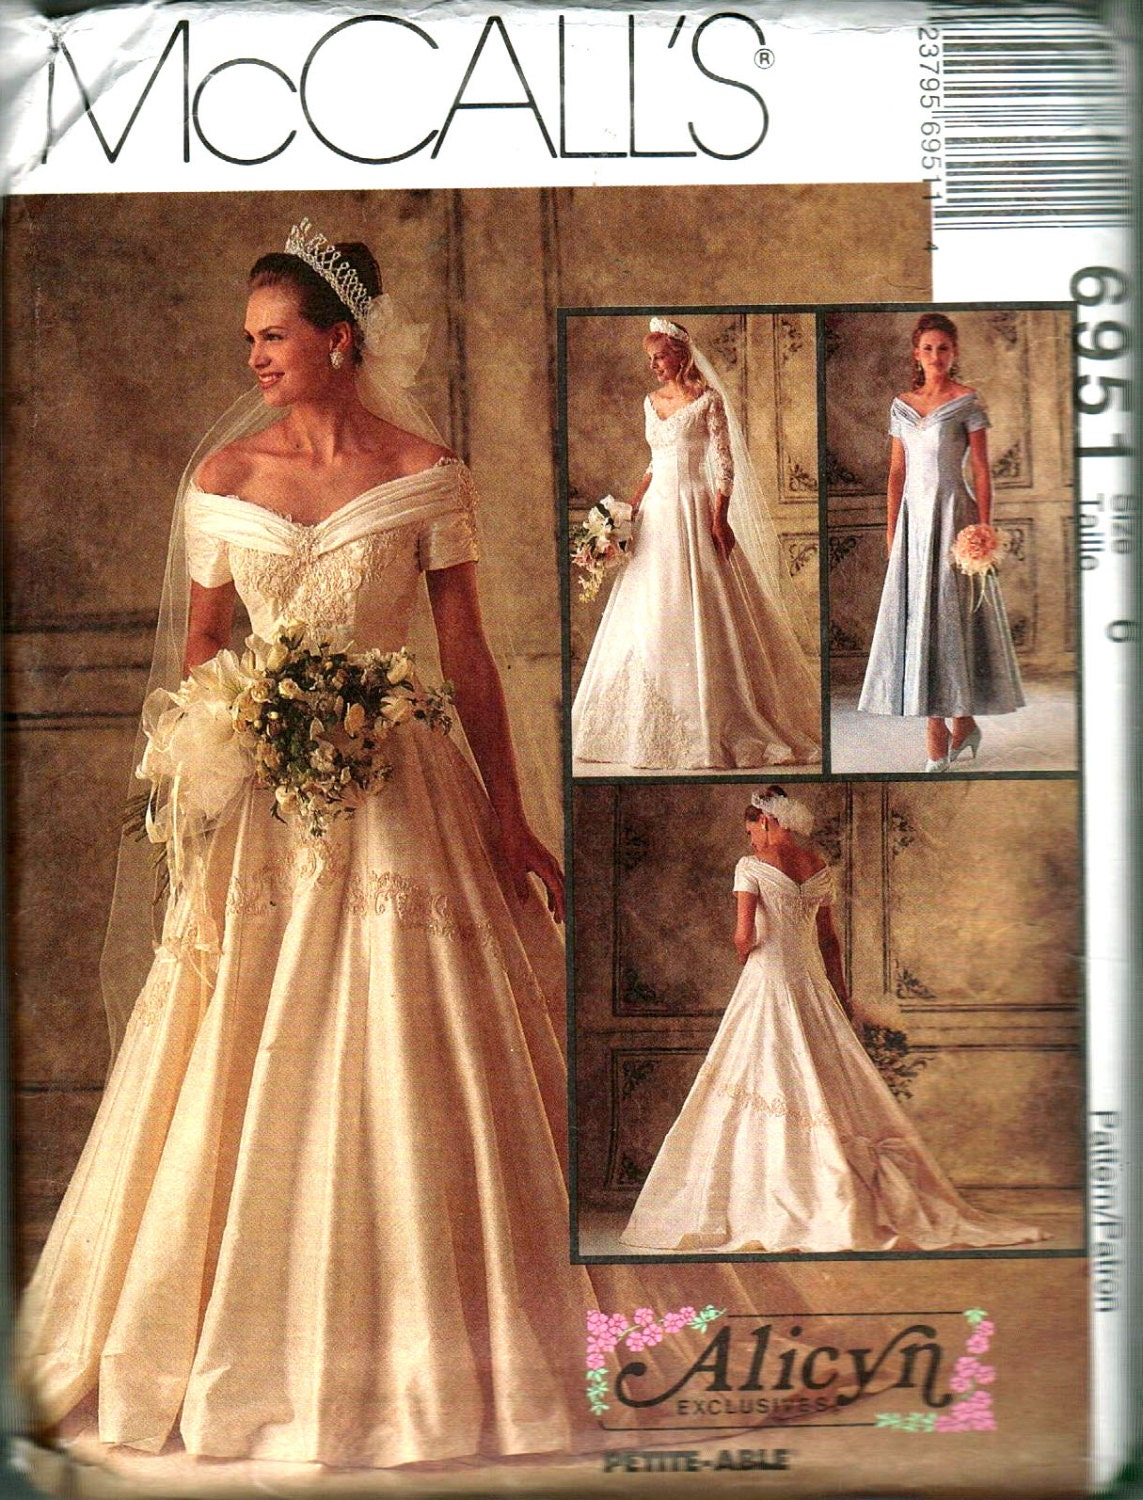 Mccalls no 6951 sewing pattern wedding dress by knittingknitch for Mccall wedding dress patterns